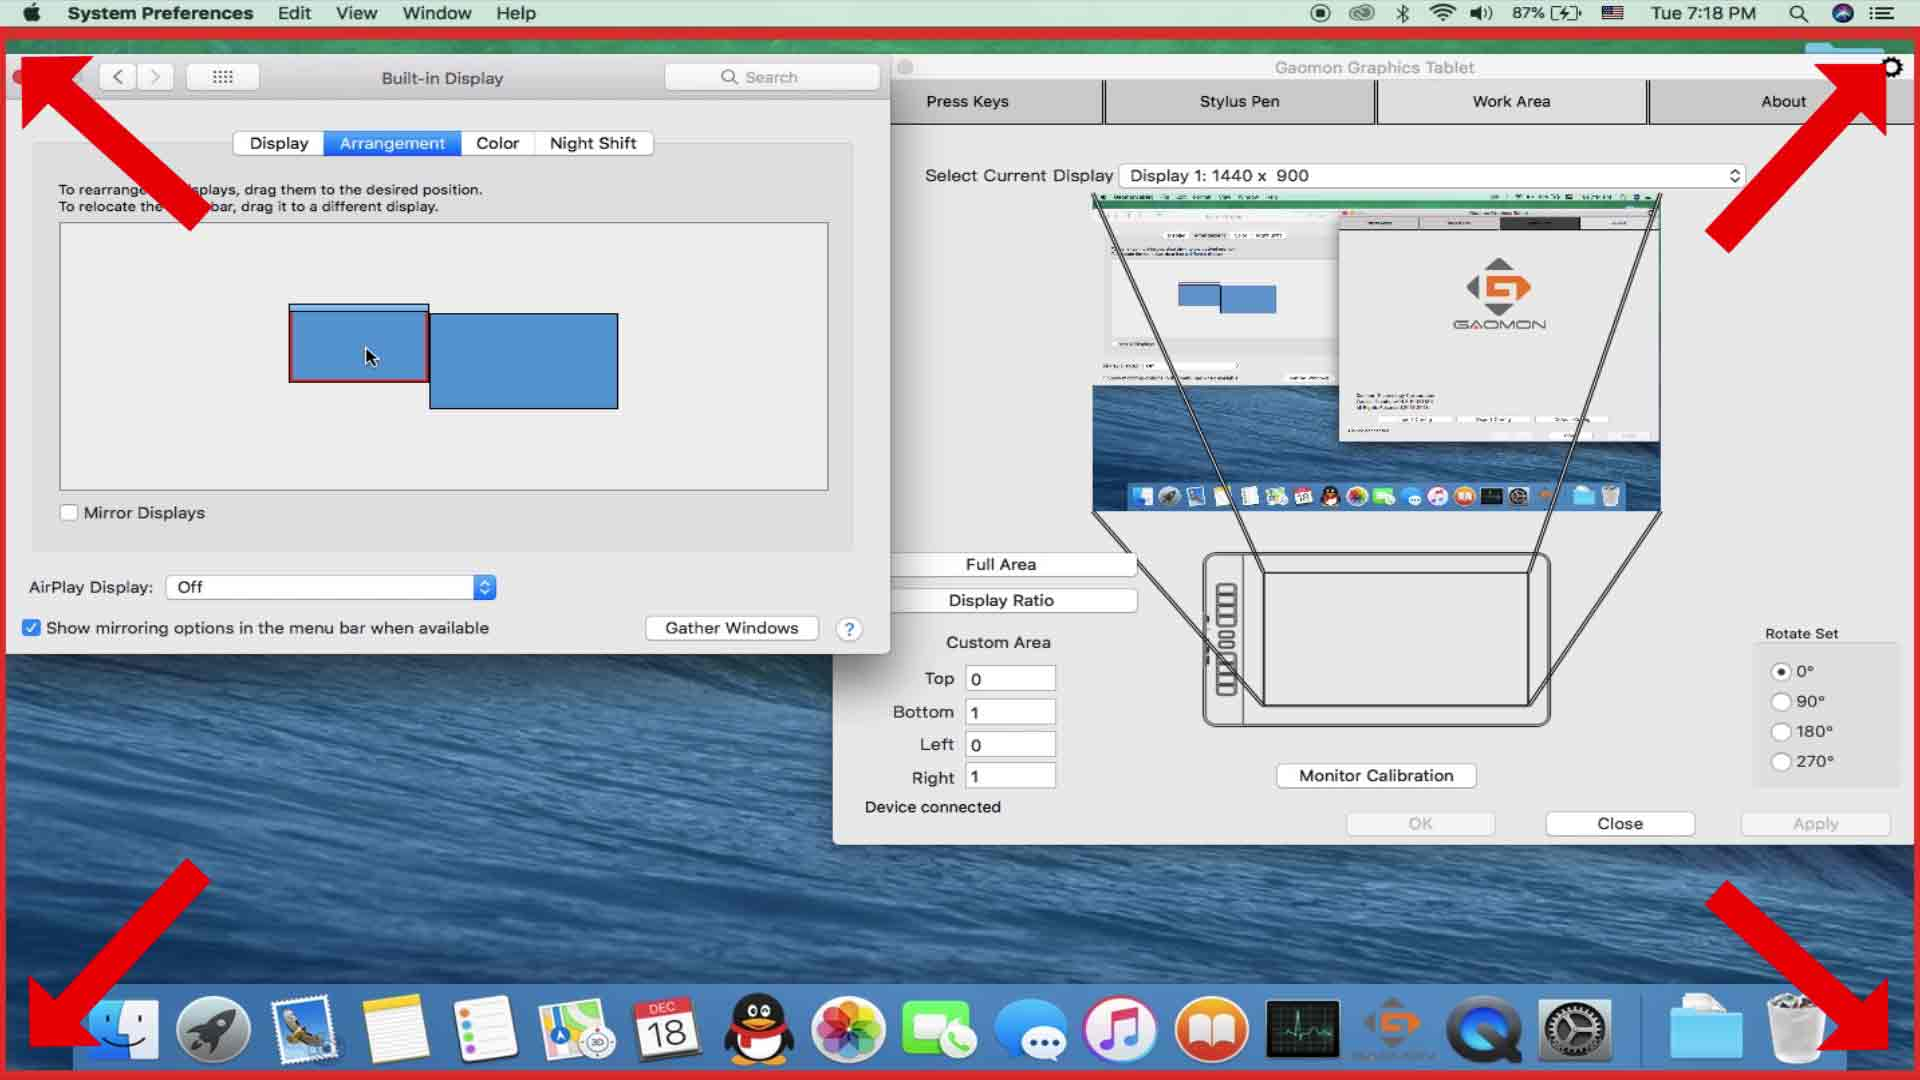 red-borders-form-on-mac-display--GAOMON-graphics-tablet